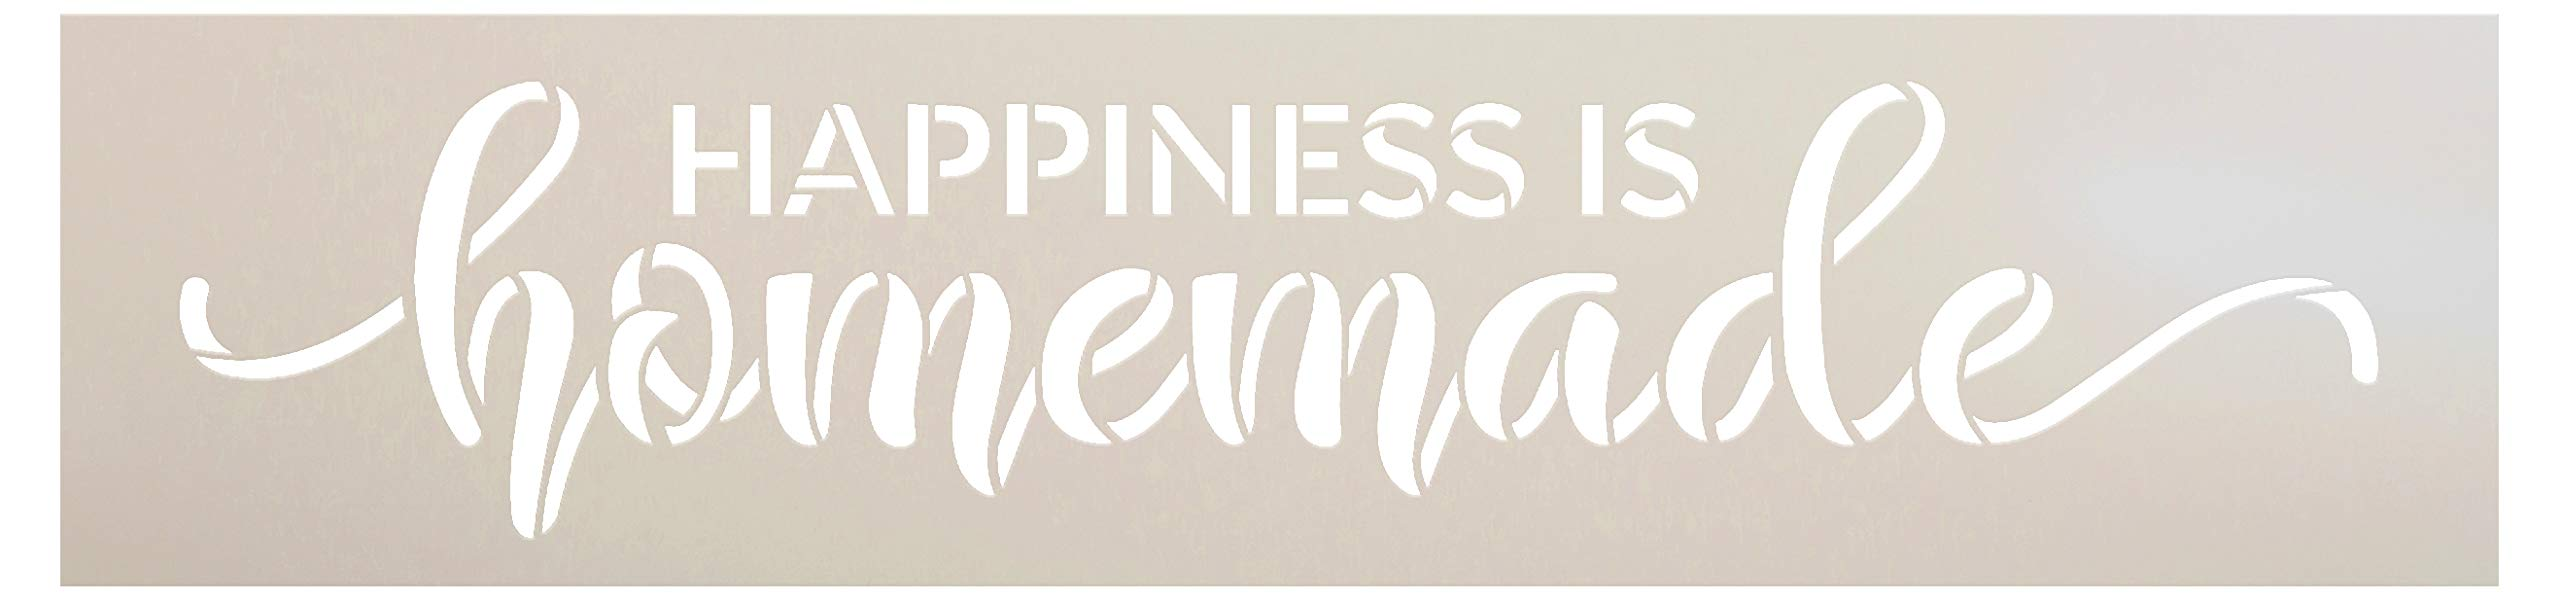 Happiness is Homemade Stencil by StudioR12 | Reusable Mylar Template | Paint Wood Sign | DIY Rustic Home Decor | Craft Cursive Script Word Art Gift - Family - Friend | Select Size (15 x 3.5)